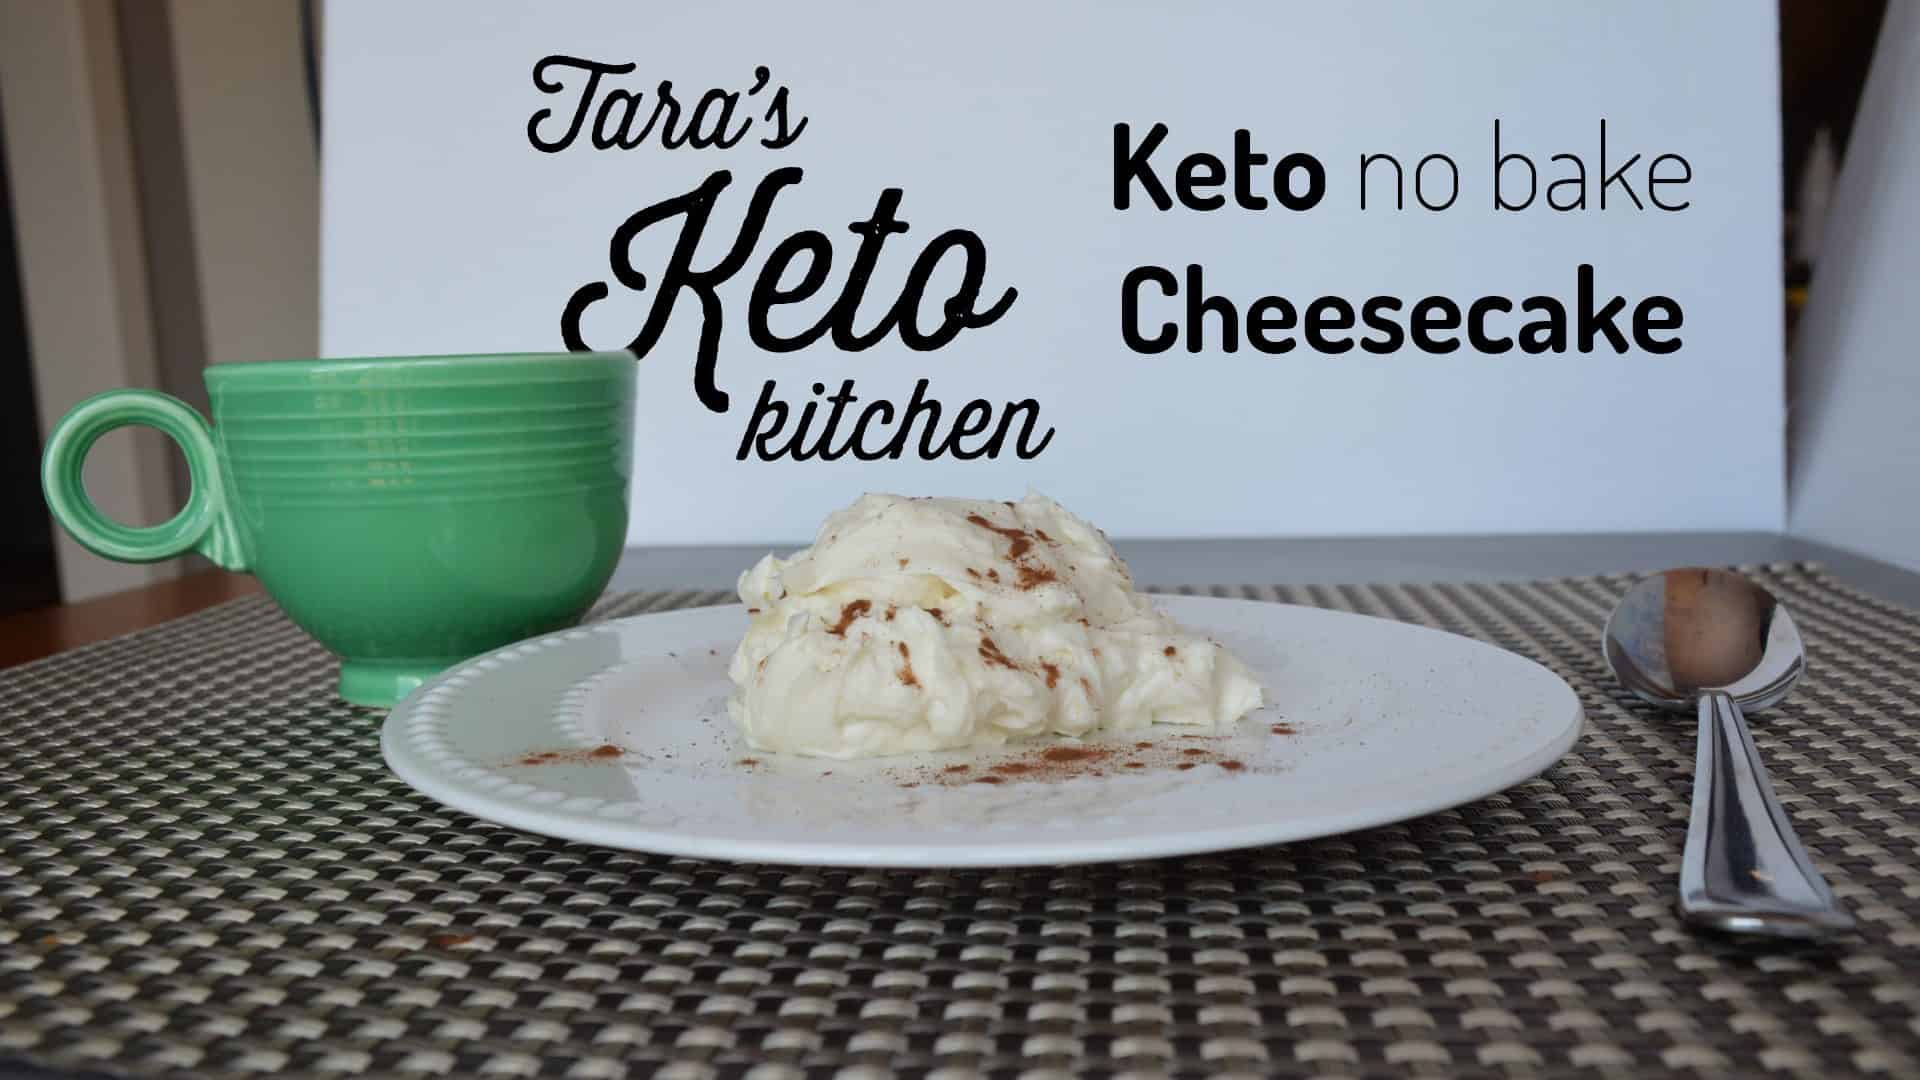 Keto No Bake Cheesecake with a cup of espresso